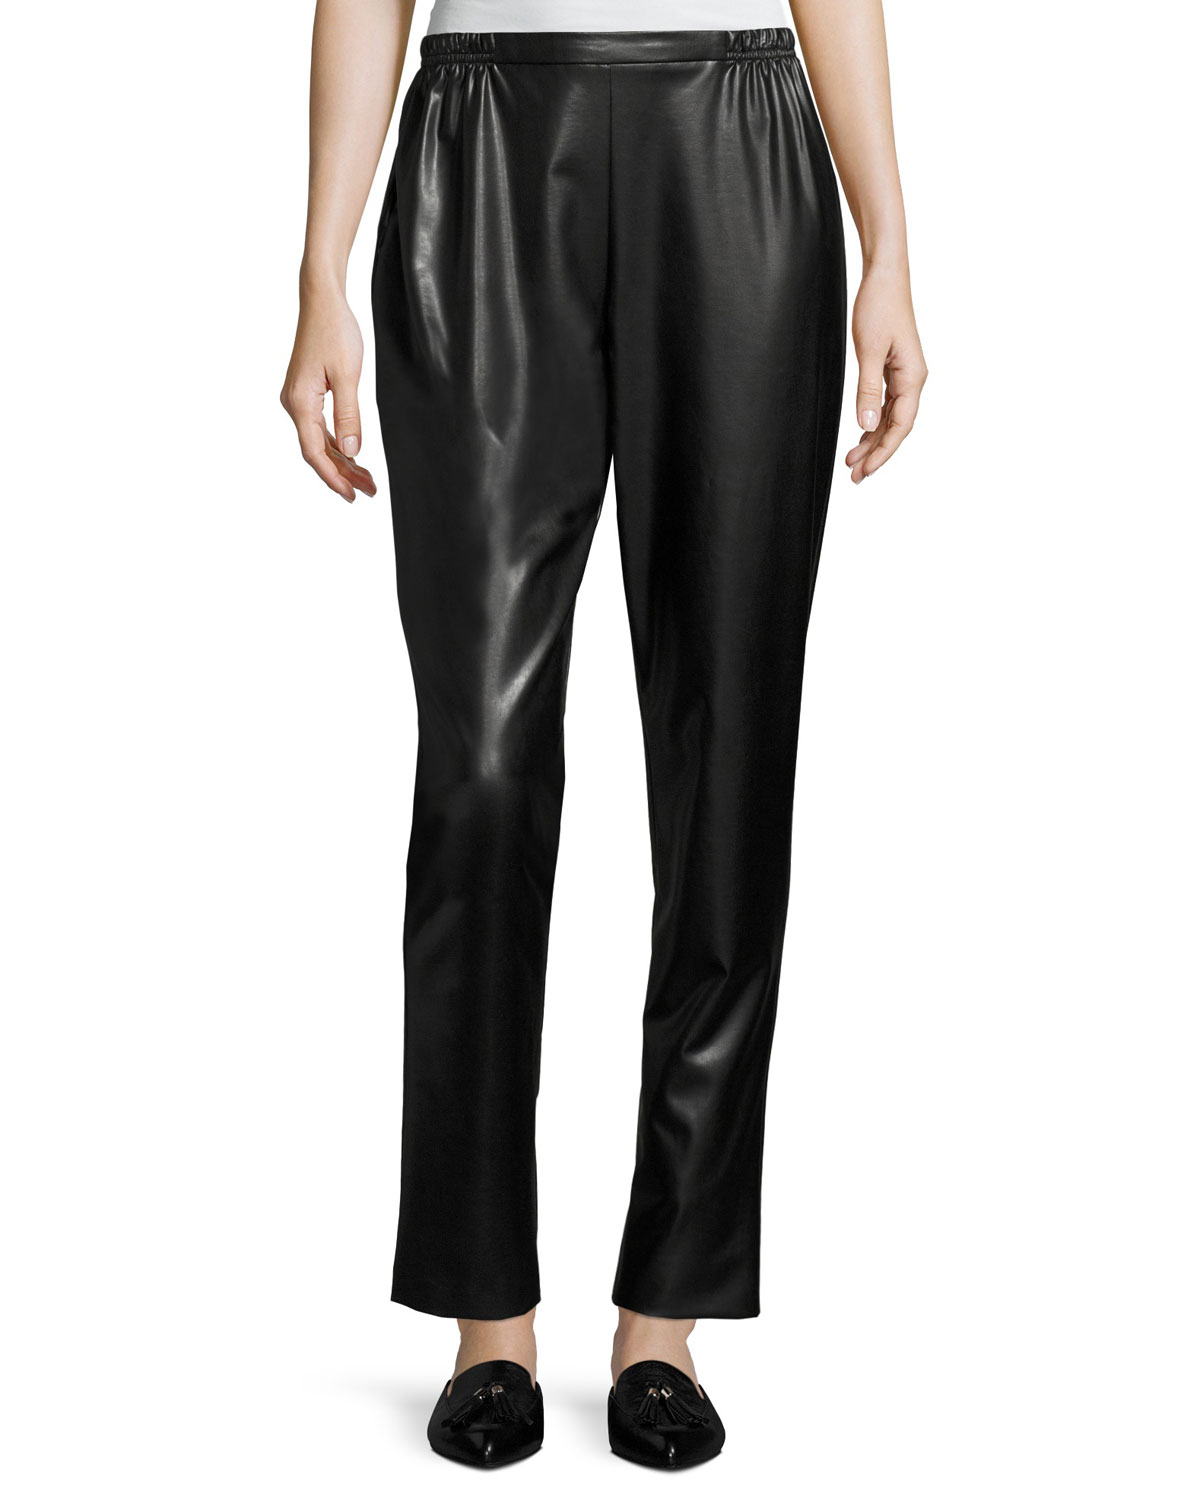 Caroline Rose Plus Size Bi-Stretch Faux-Leather Pants, Black